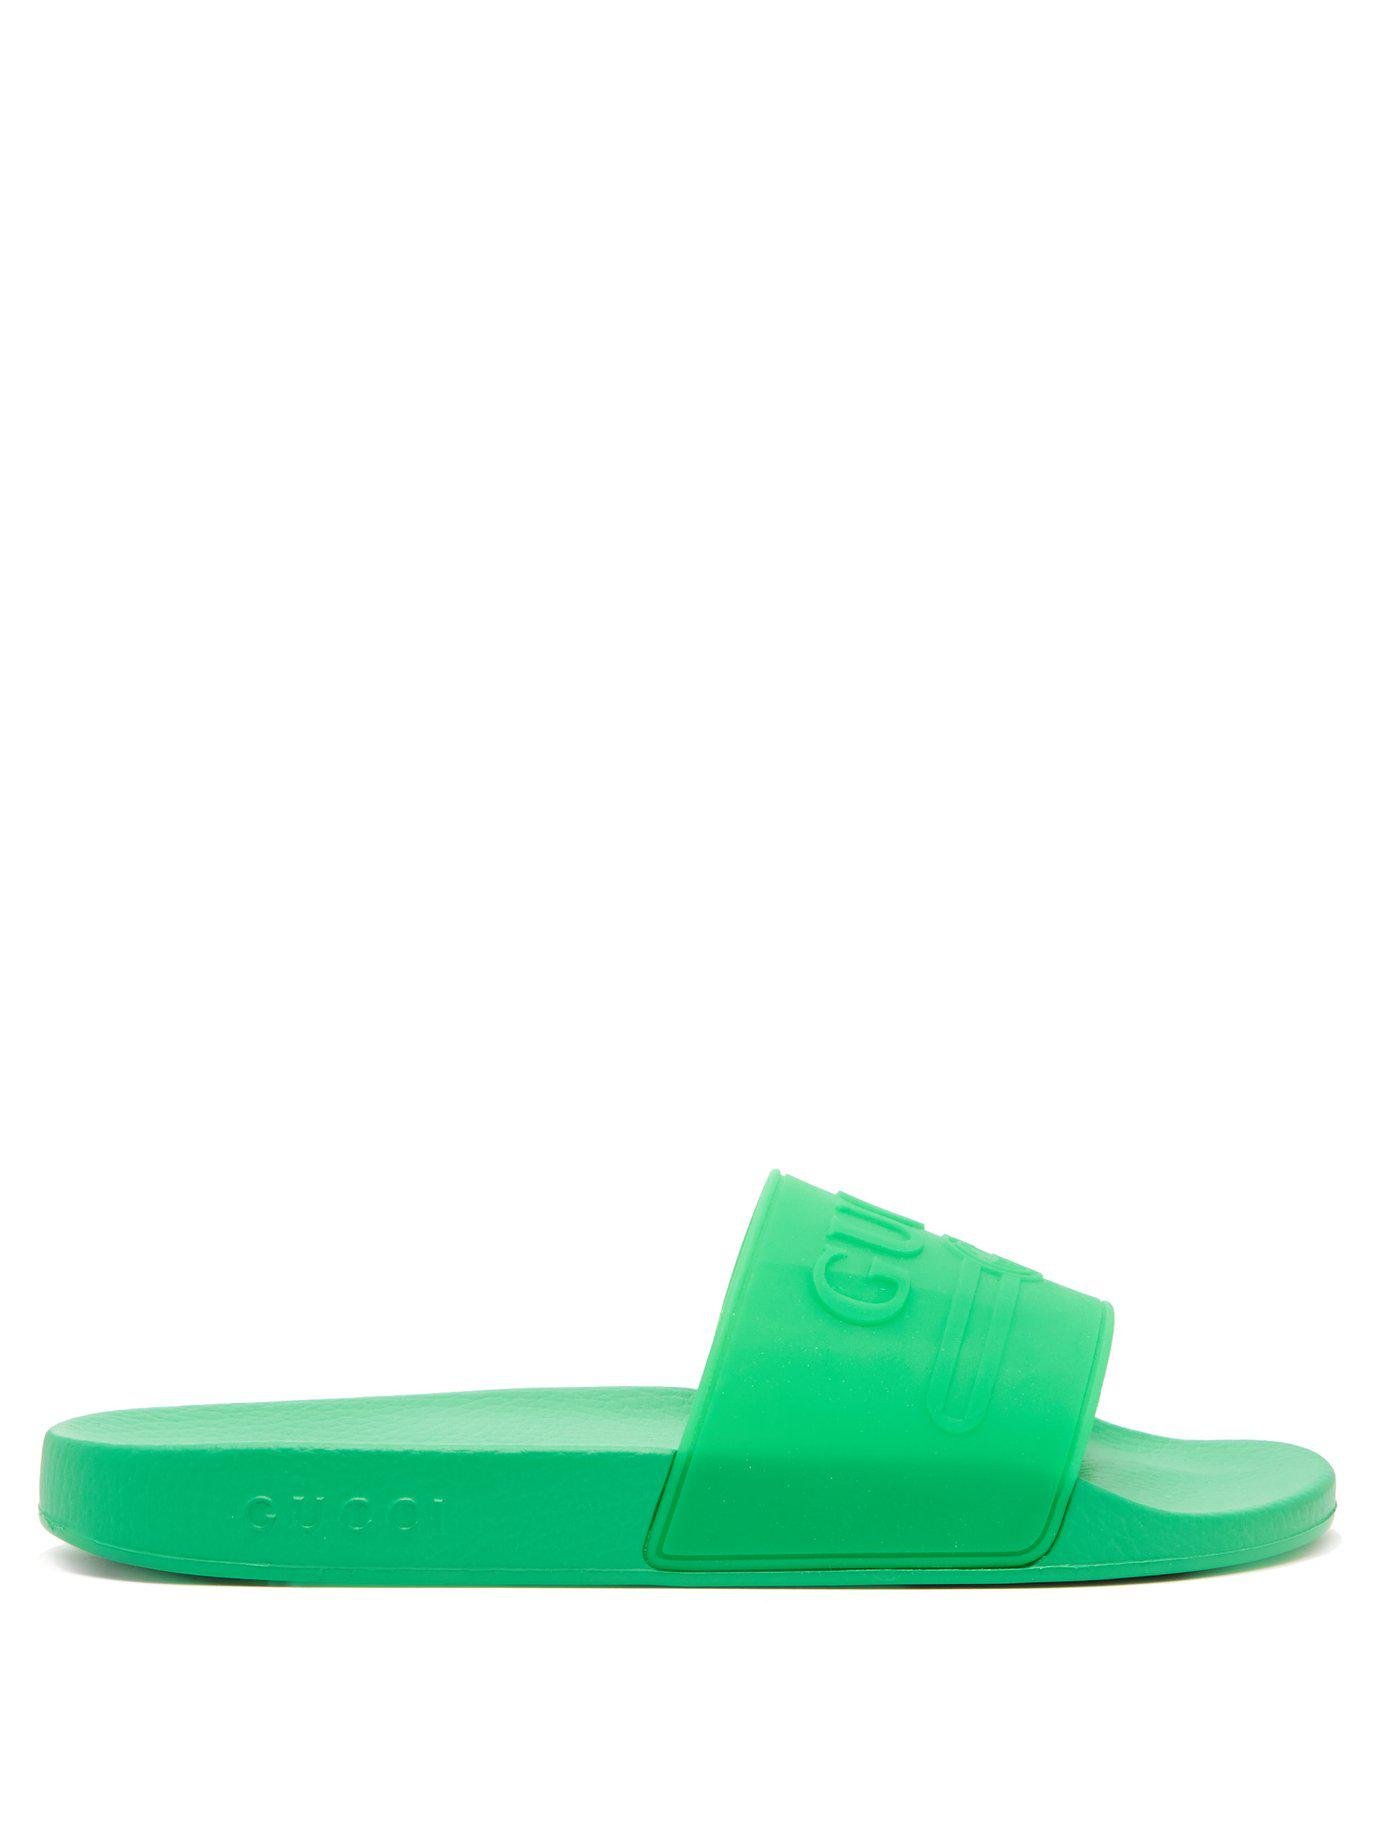 27827218ca7 Lyst - Gucci Pursuit Rubber Slides in Green for Men